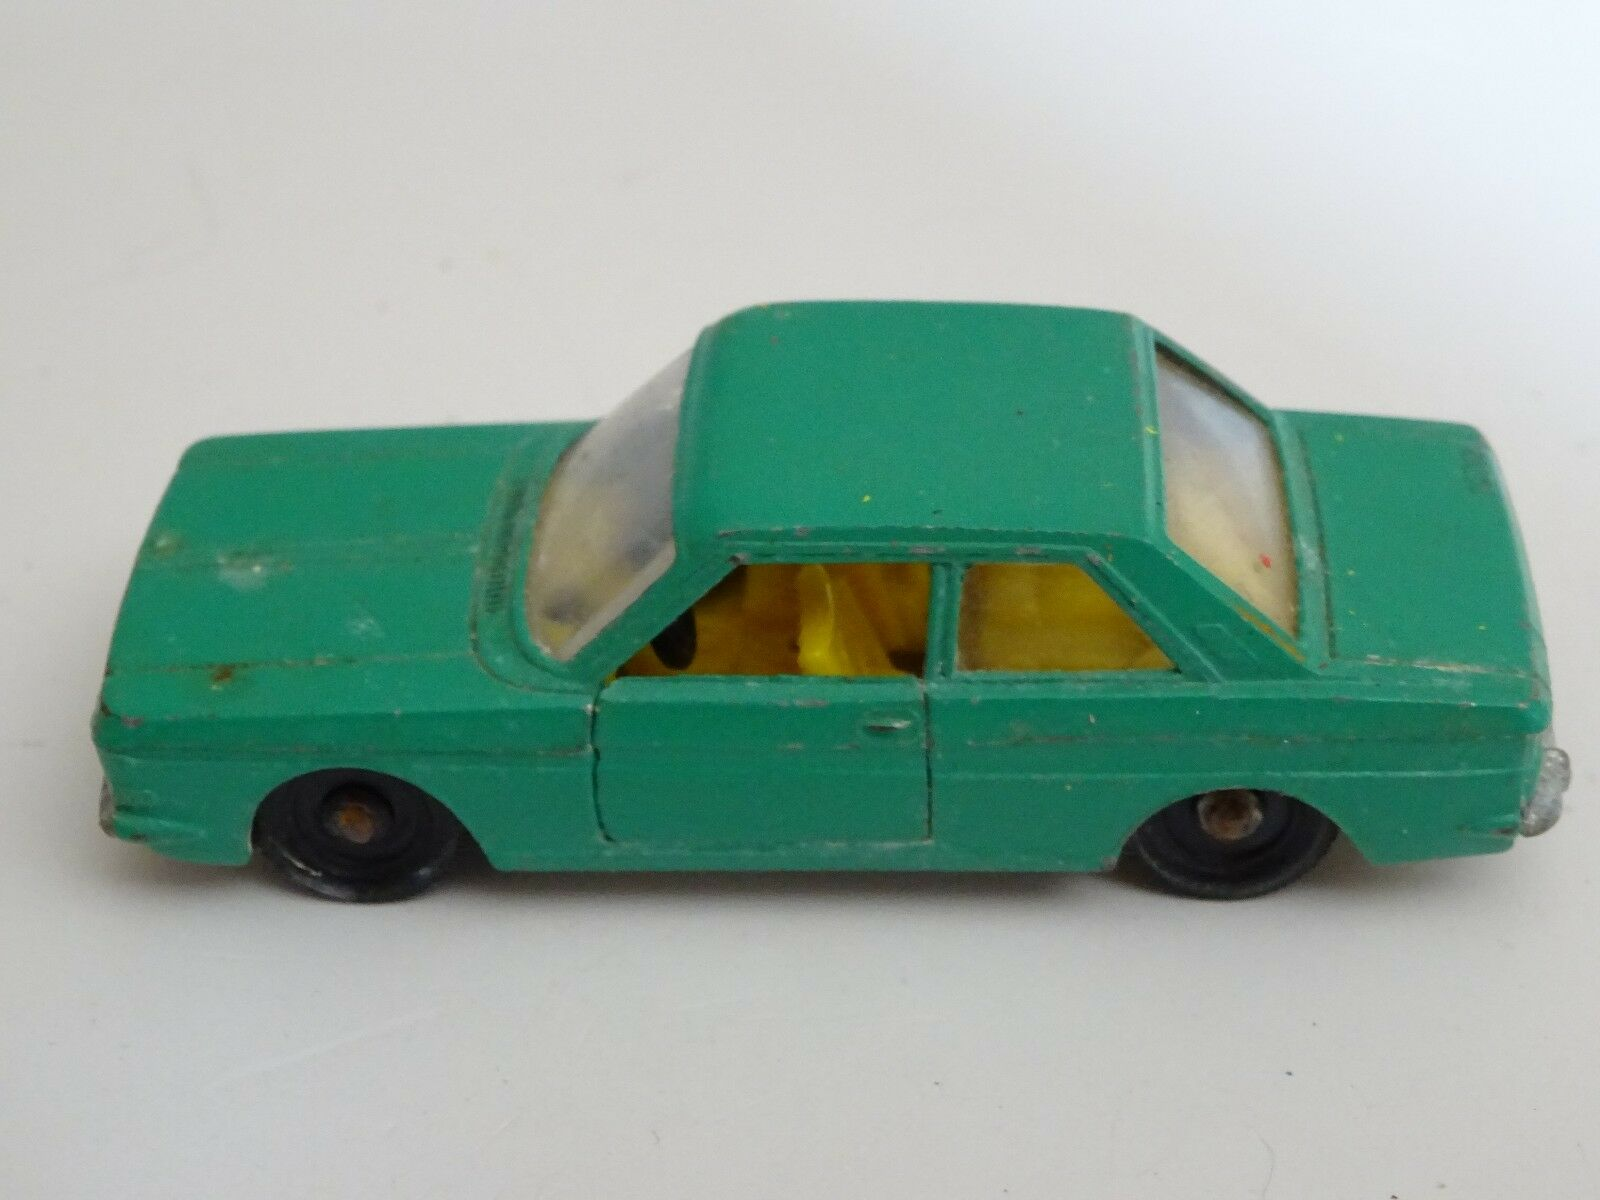 Vintage Siku Jade Green Green Green Ford 15M V273 Made In Germany RARE cccac9